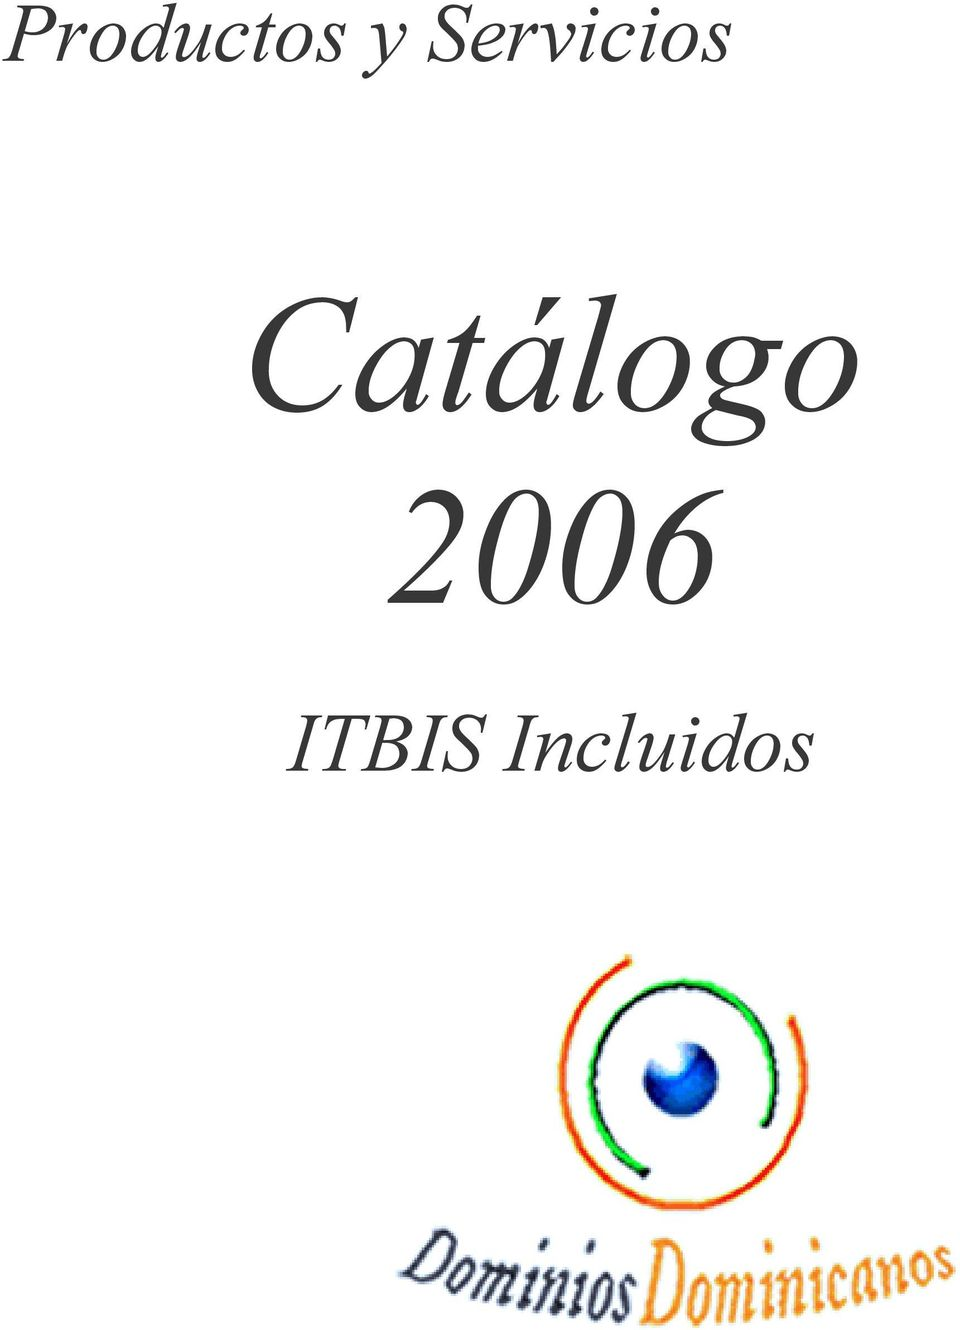 2006 ITBIS